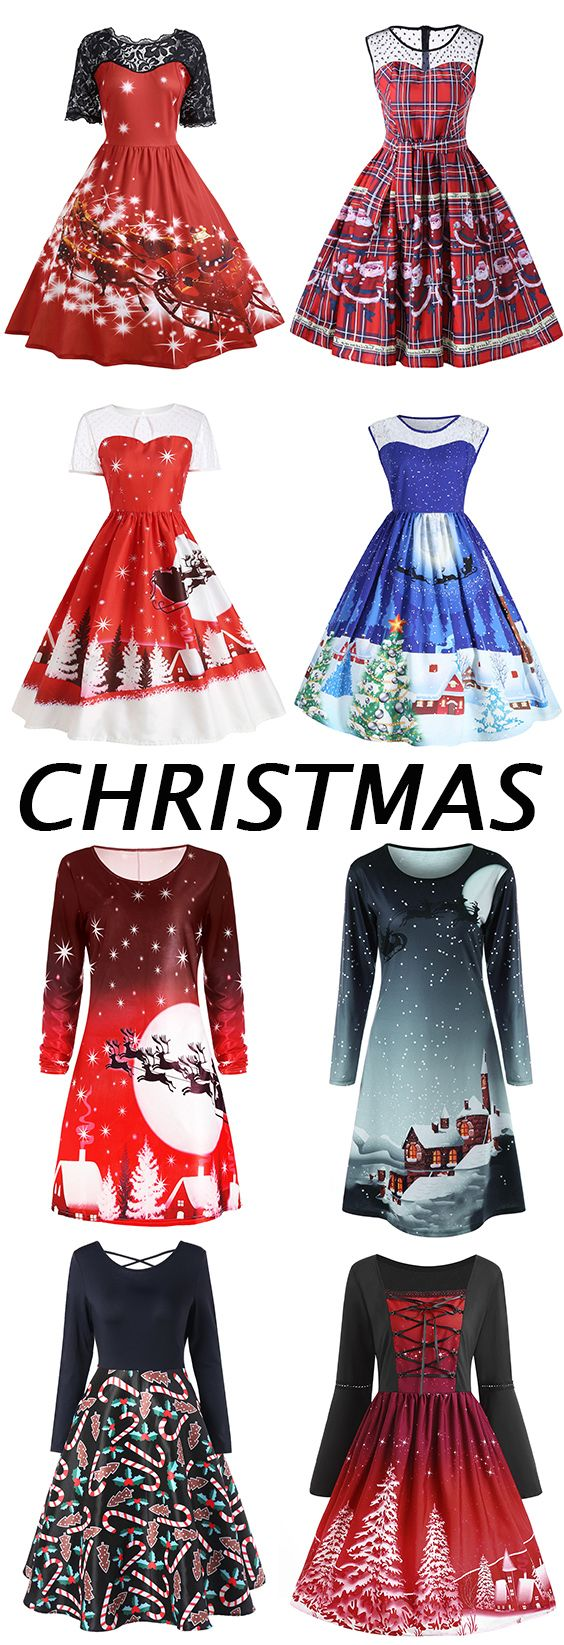 best 25+ christmas dresses ideas on pinterest | dresses for